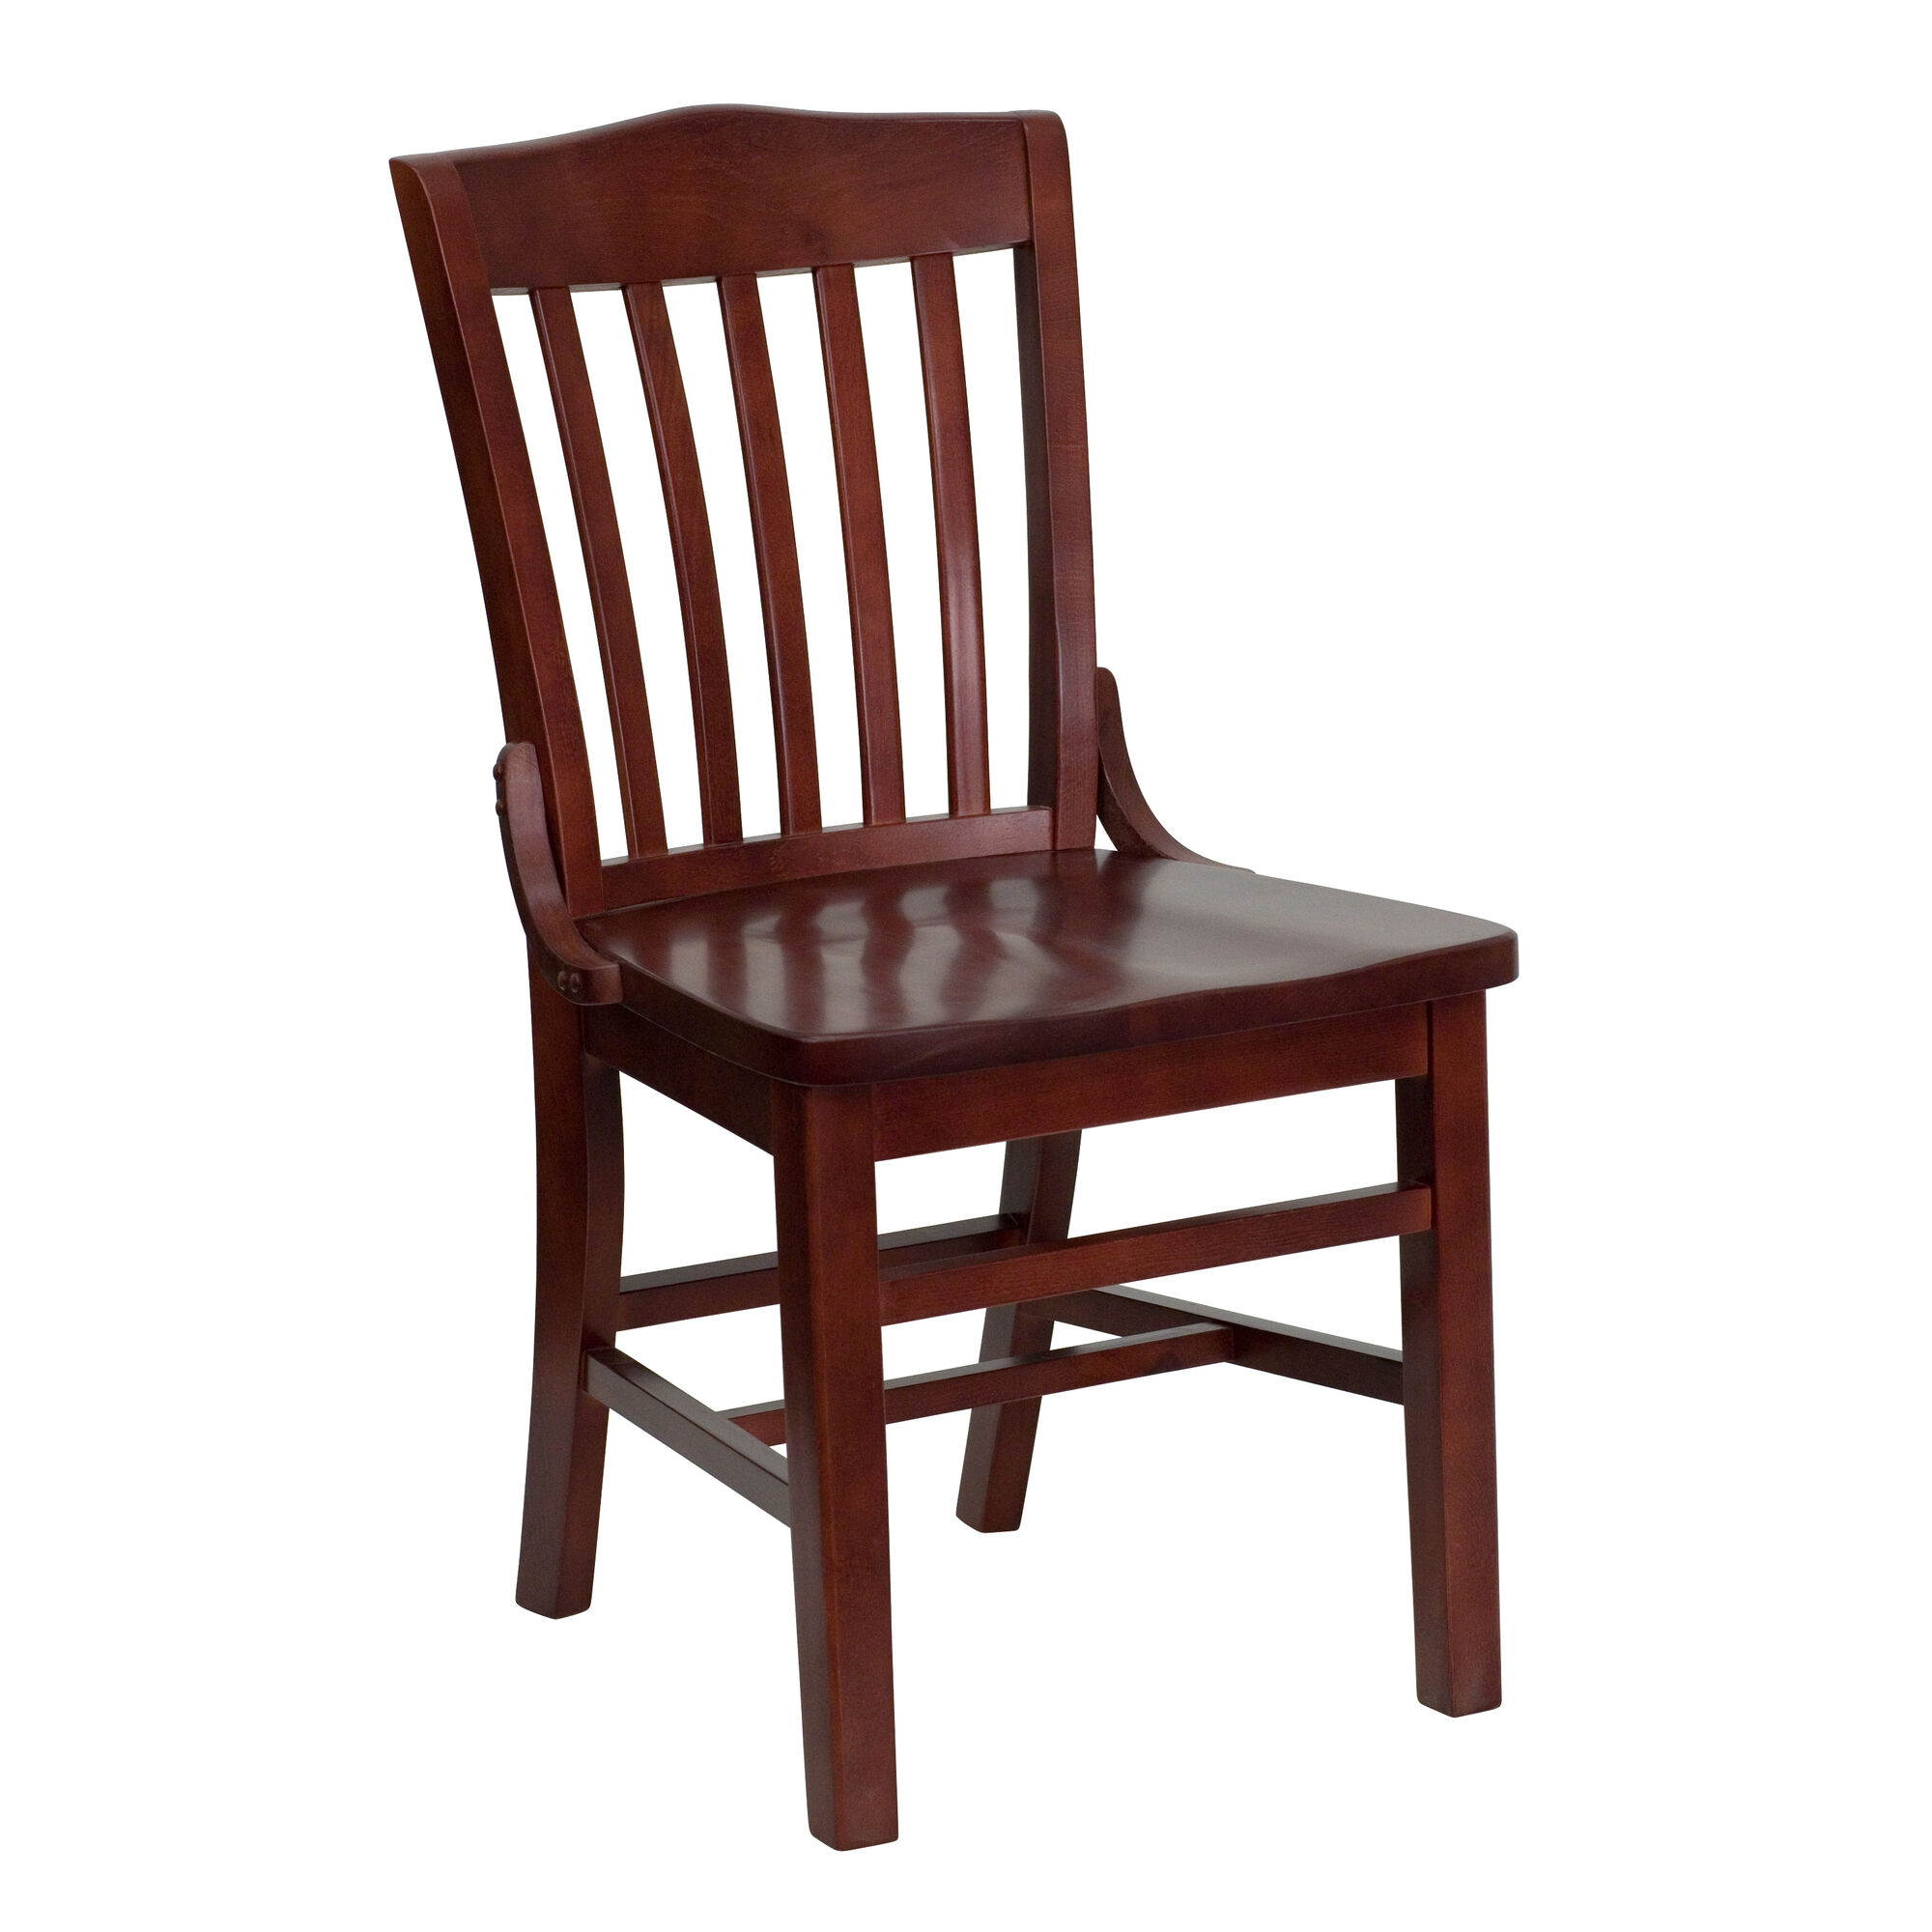 Mahogany Wood Dining Chair BFDH-7992MBK-TDR ...